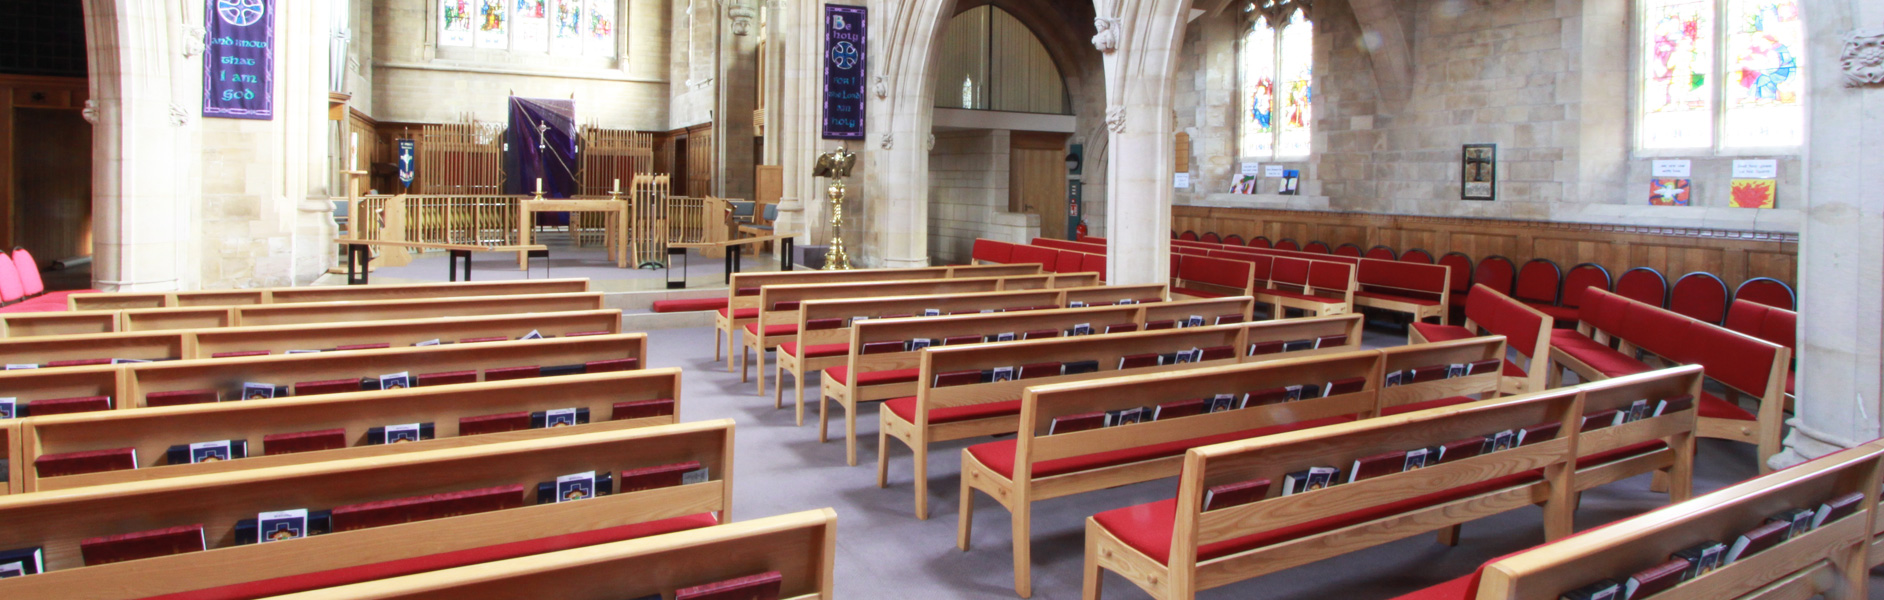 ICS projects in St. Mark's Church, Harrogate